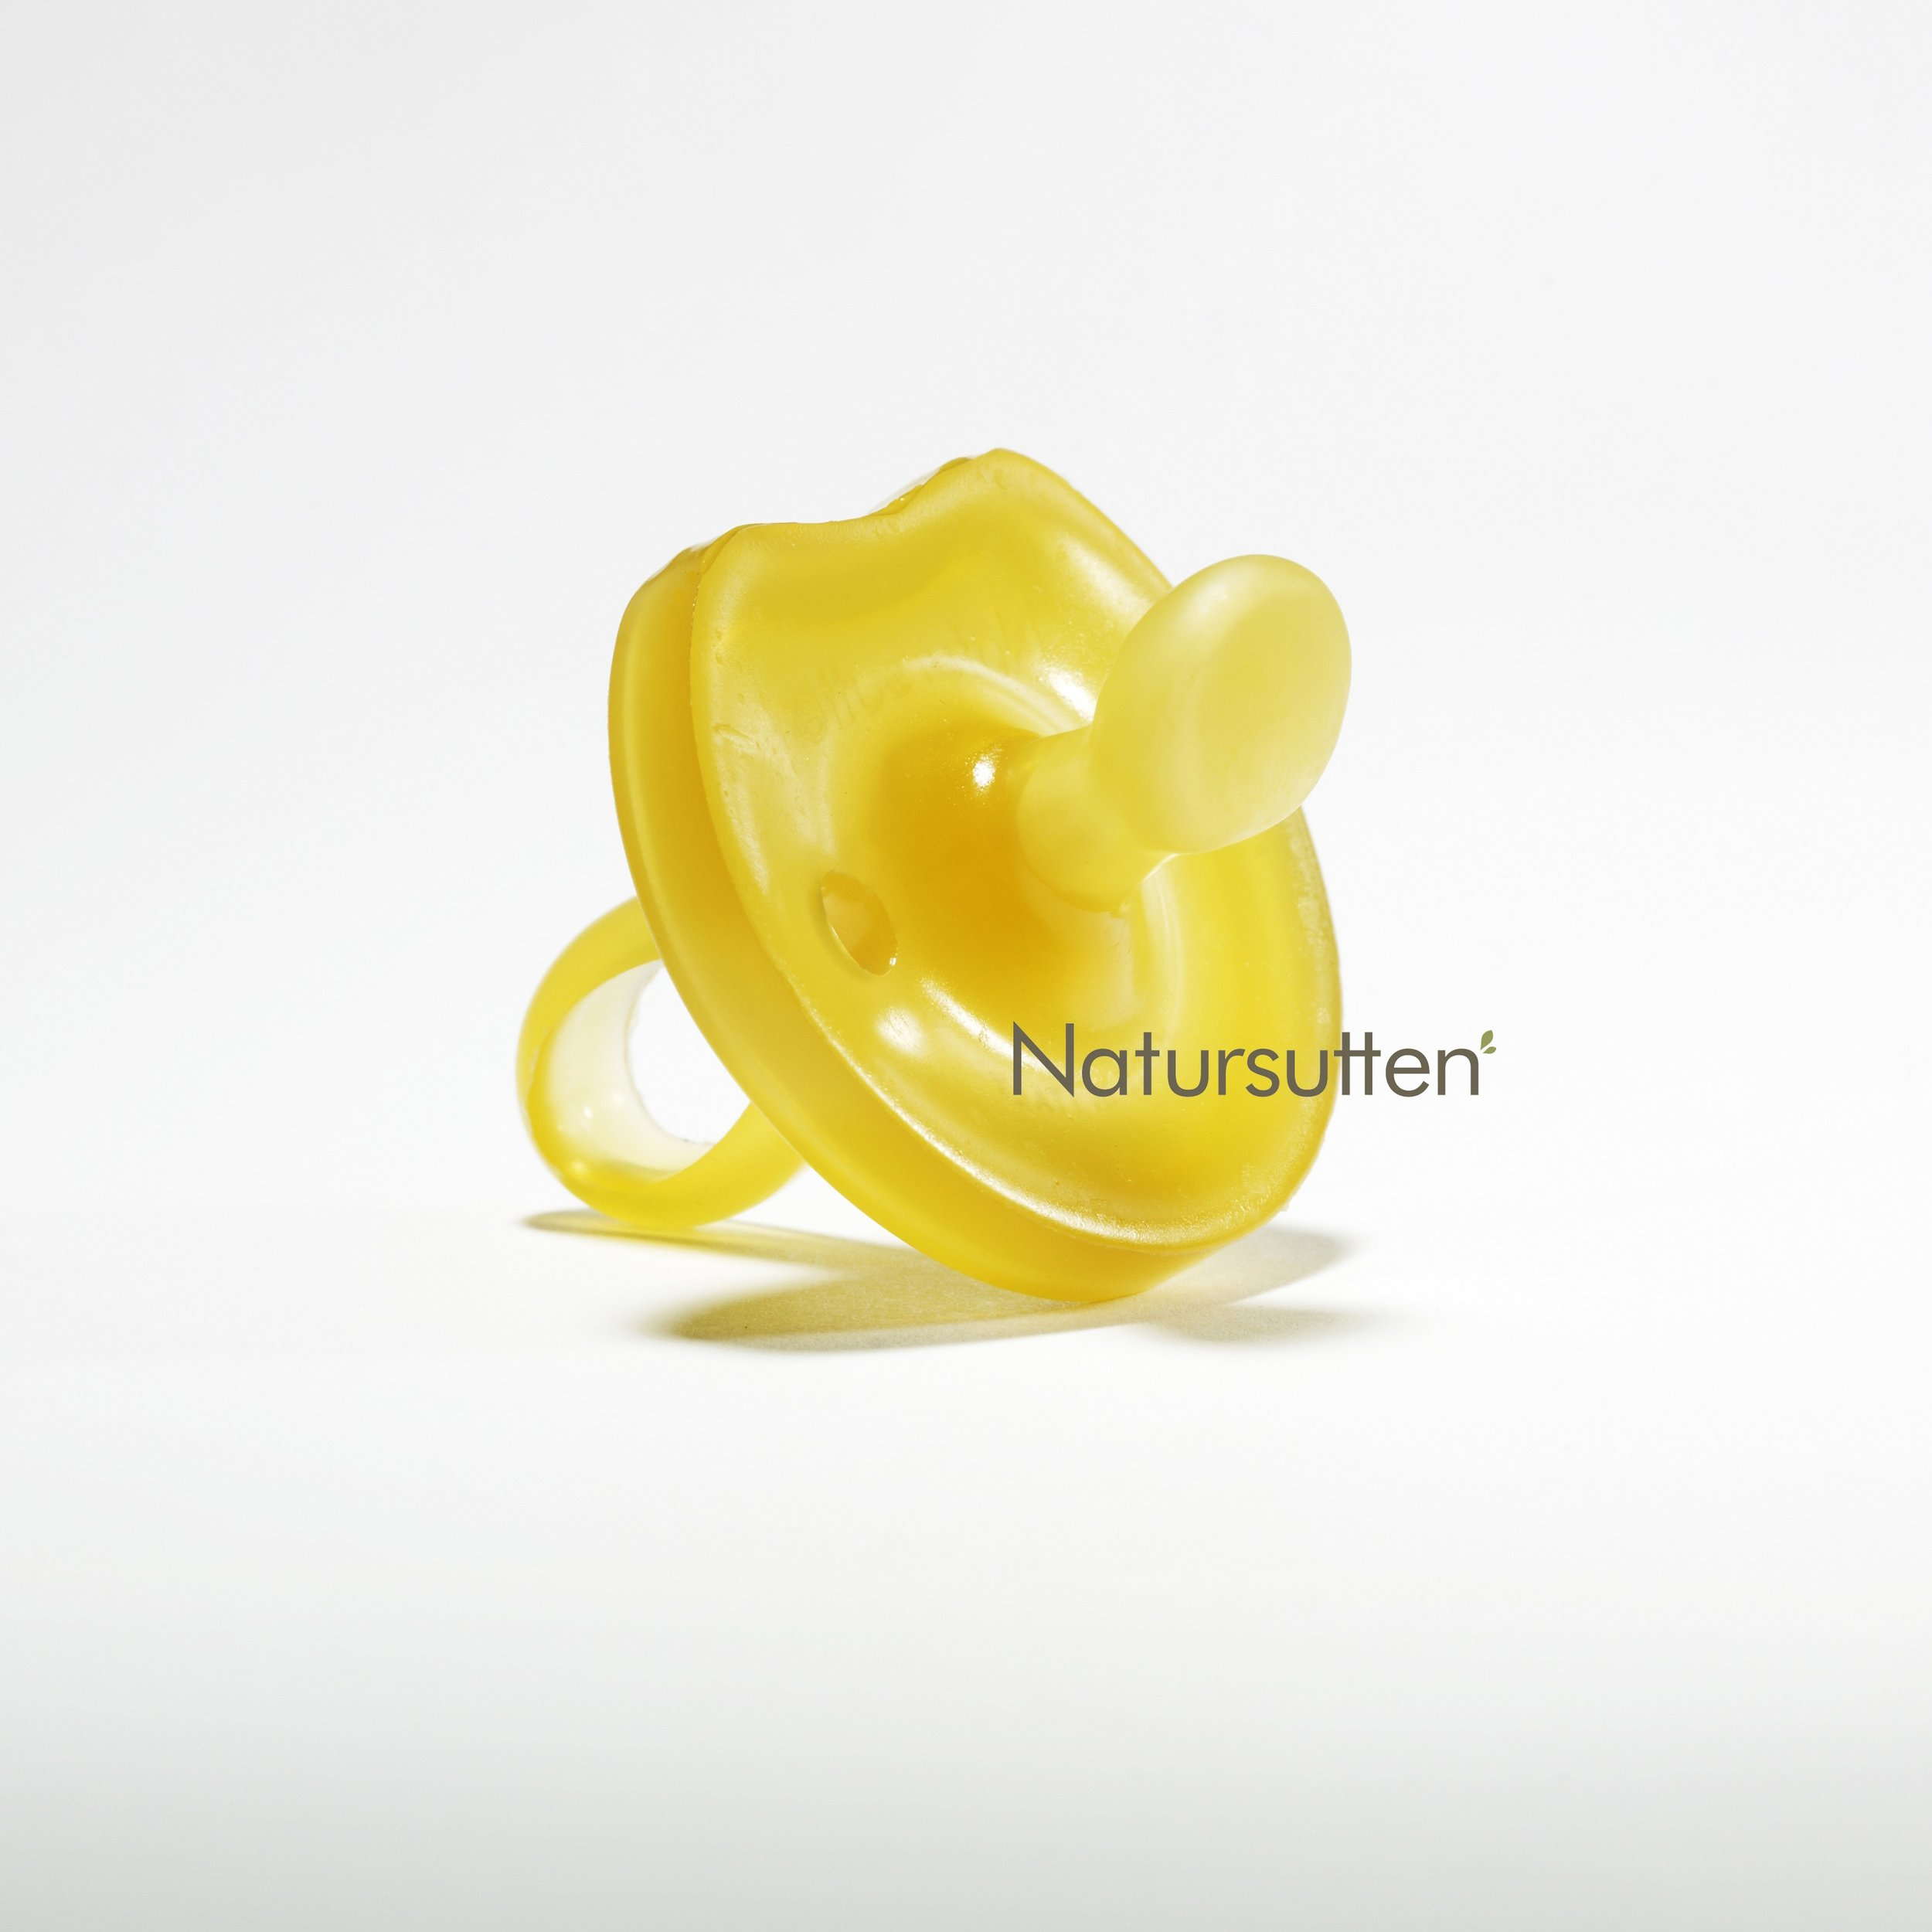 Natursutten Natural Rubber Orthodontic Pacifier size small    $8.95    Wants 1  purchased